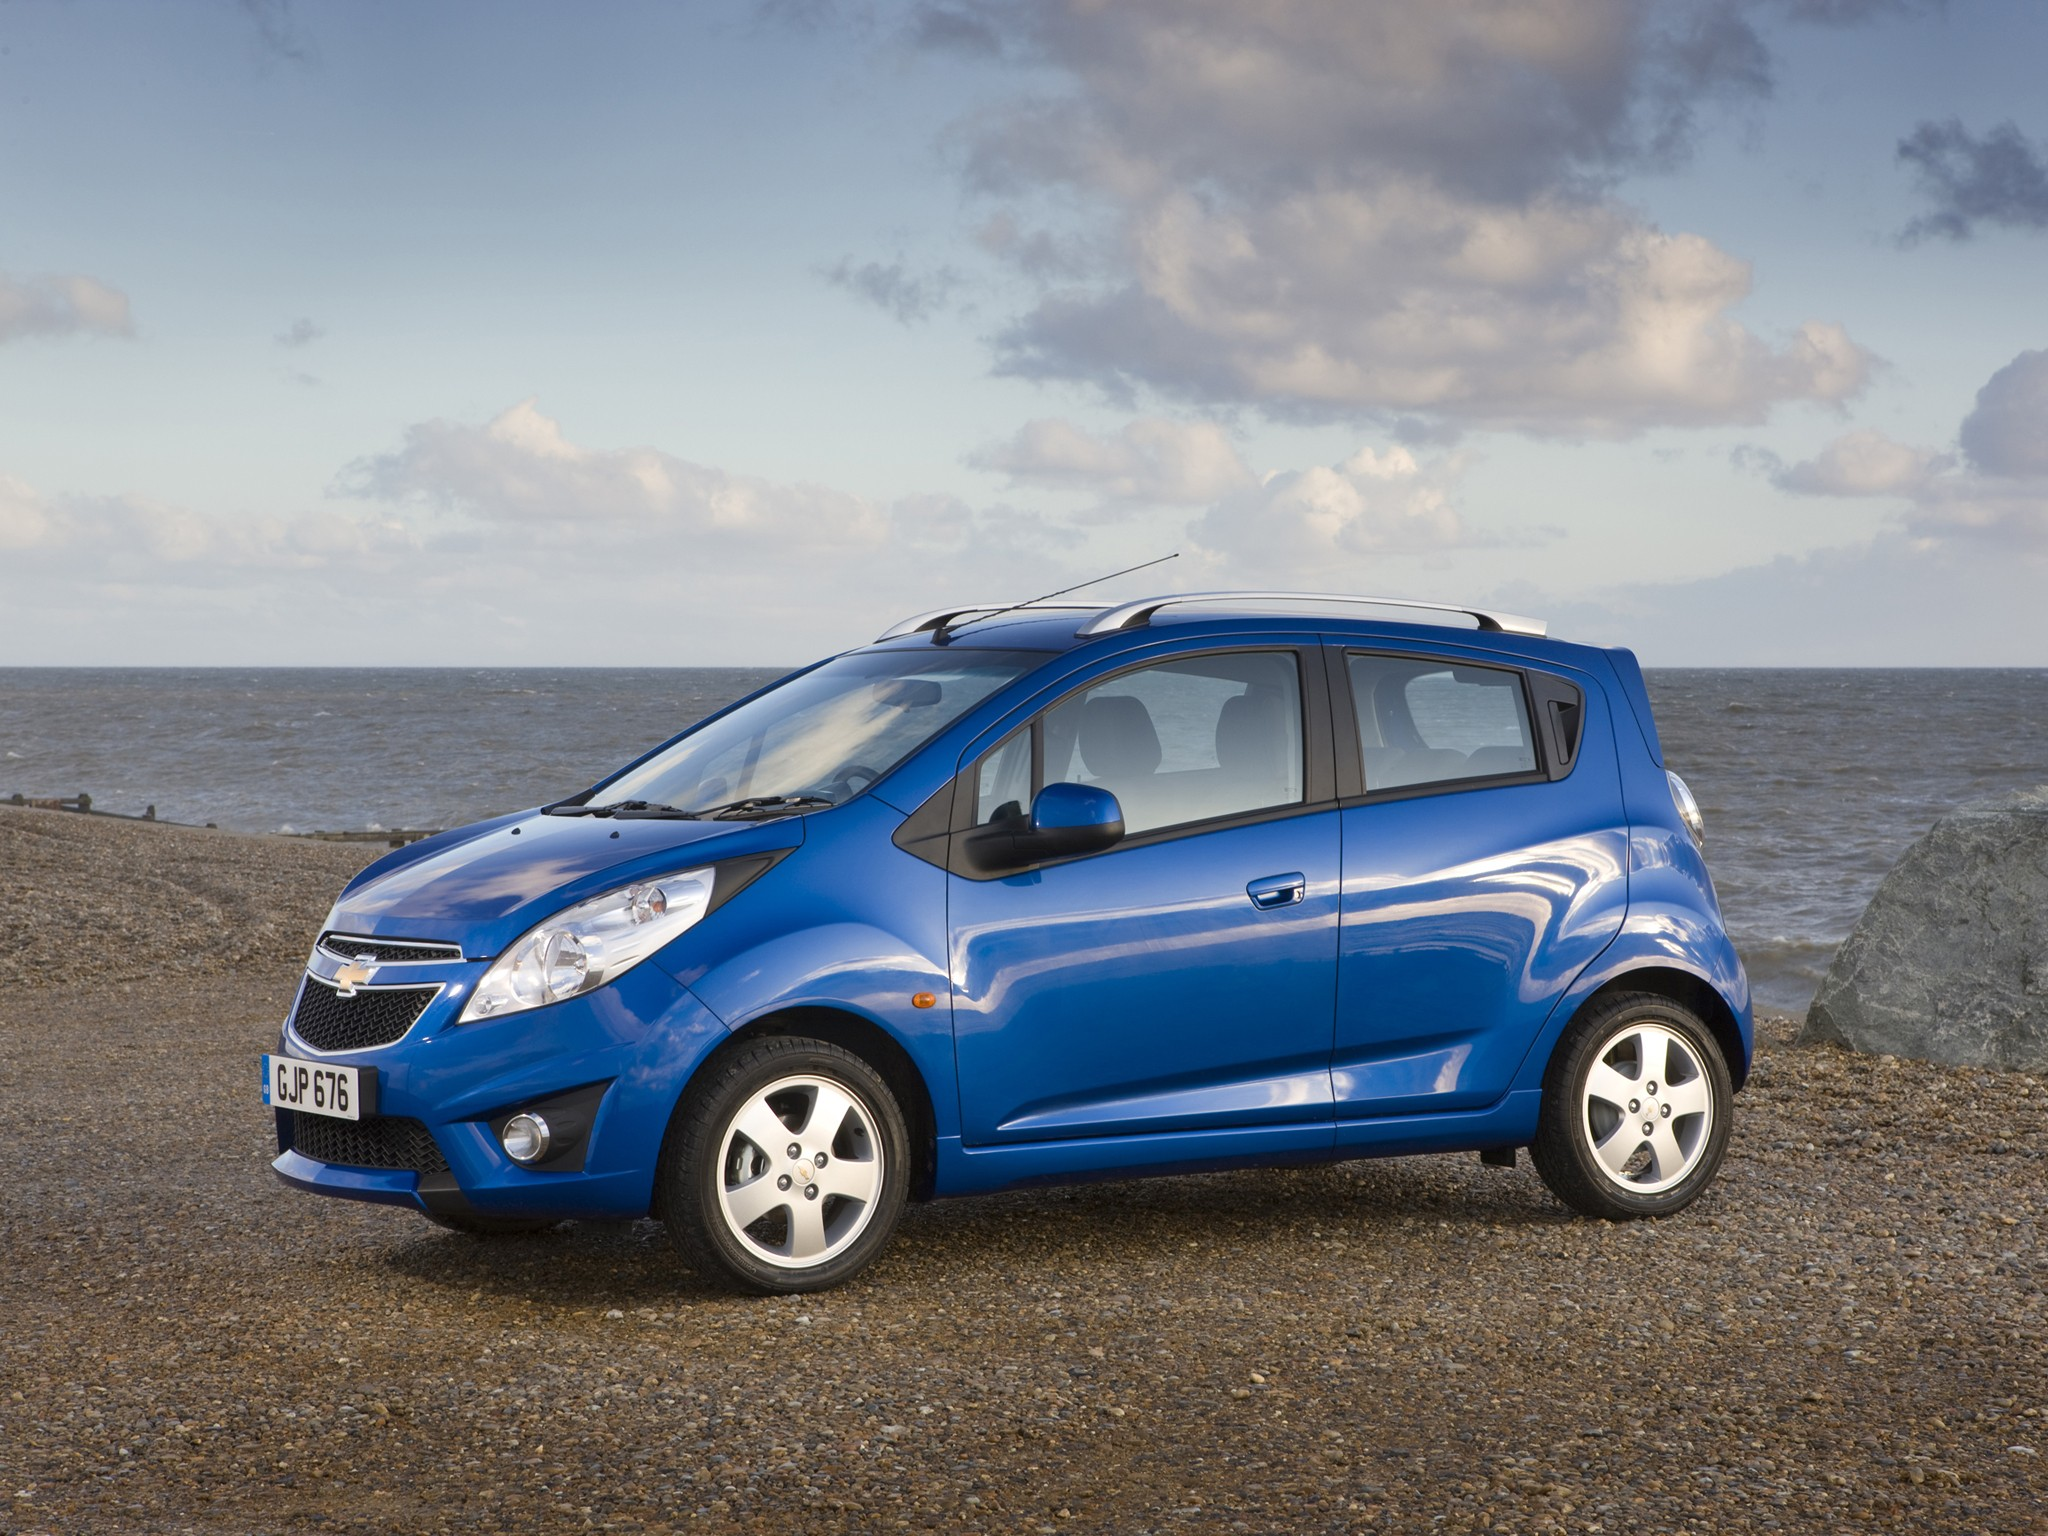 CHEVROLET Matiz / Spark (M300) specs & photos - 2009, 2010 ...